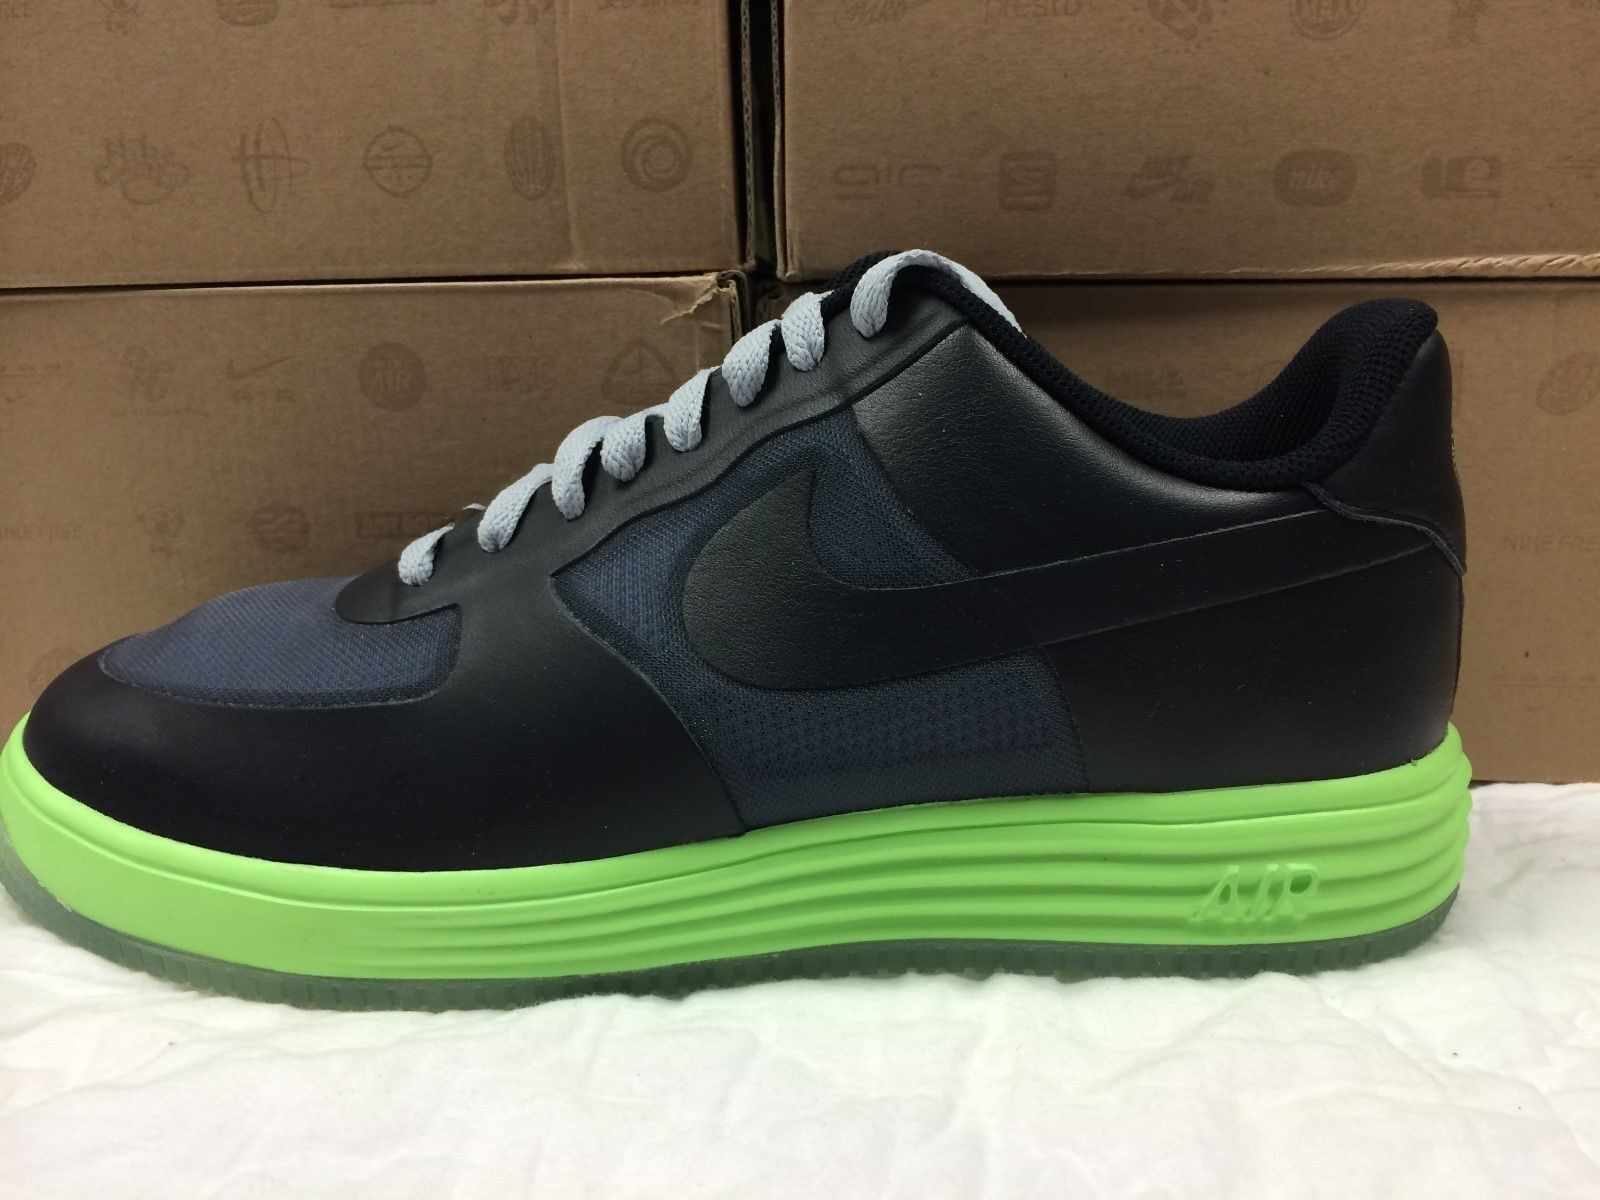 NEW MENS NIKE LUNAR FORCE 1 FUSE LTHR SNEAKERS-SHOES-SIZE 10.5